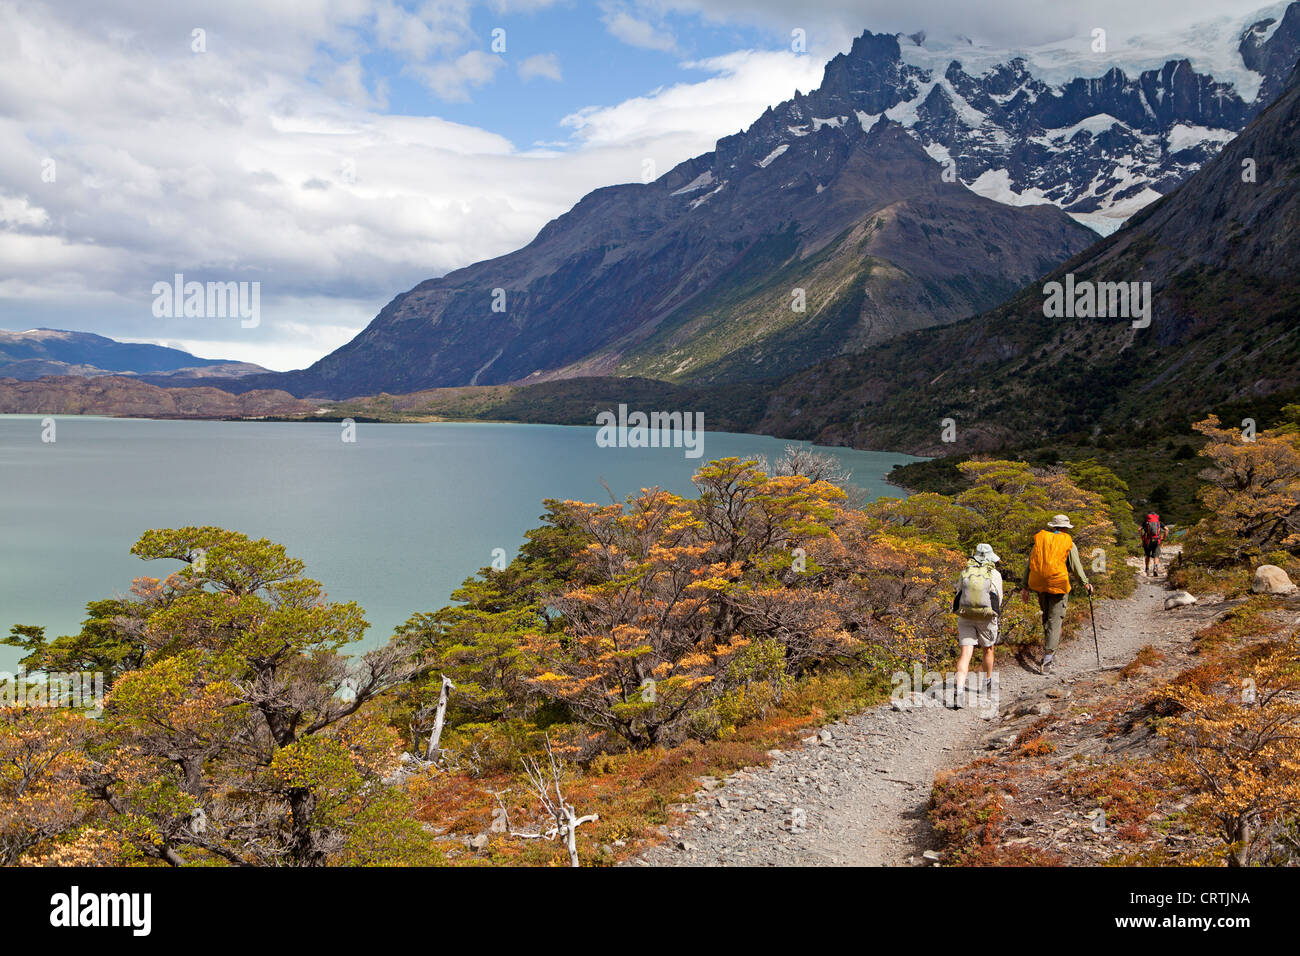 Hiking along the shores of Lago Nordenskjold in Torres del Paine National Park - Stock Image